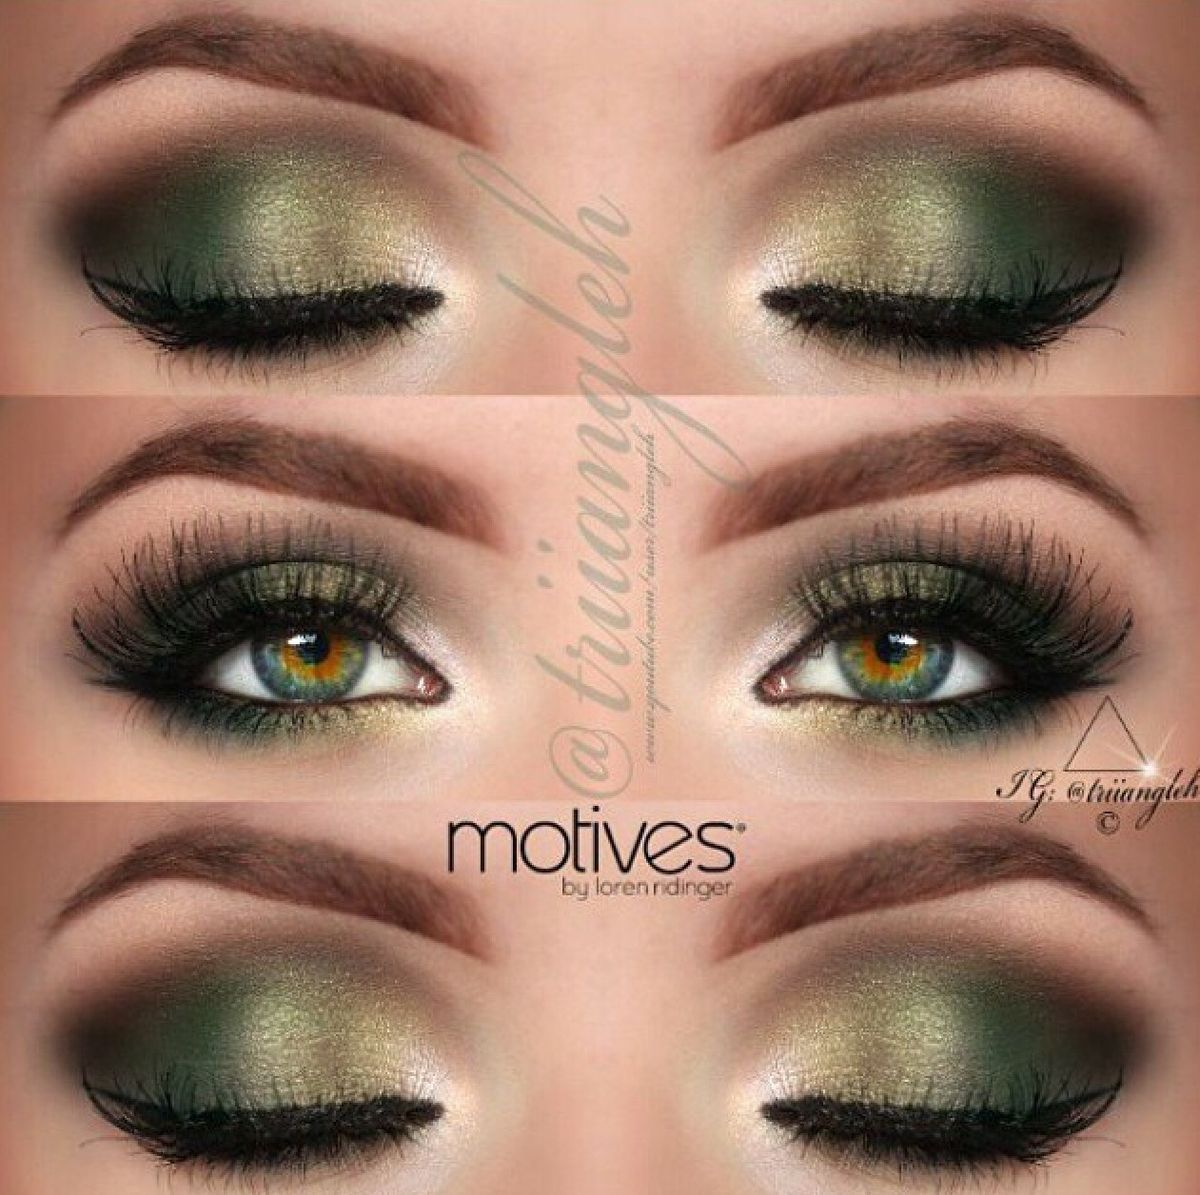 8c1607ebb14604dfa8d5096a442c99a3g 12001195 pixels makeup top 10 simple smokey eye makeup tutorials for green eyes i obviously dont have green eyes but im totes obsessed with green eye shadow baditri Images